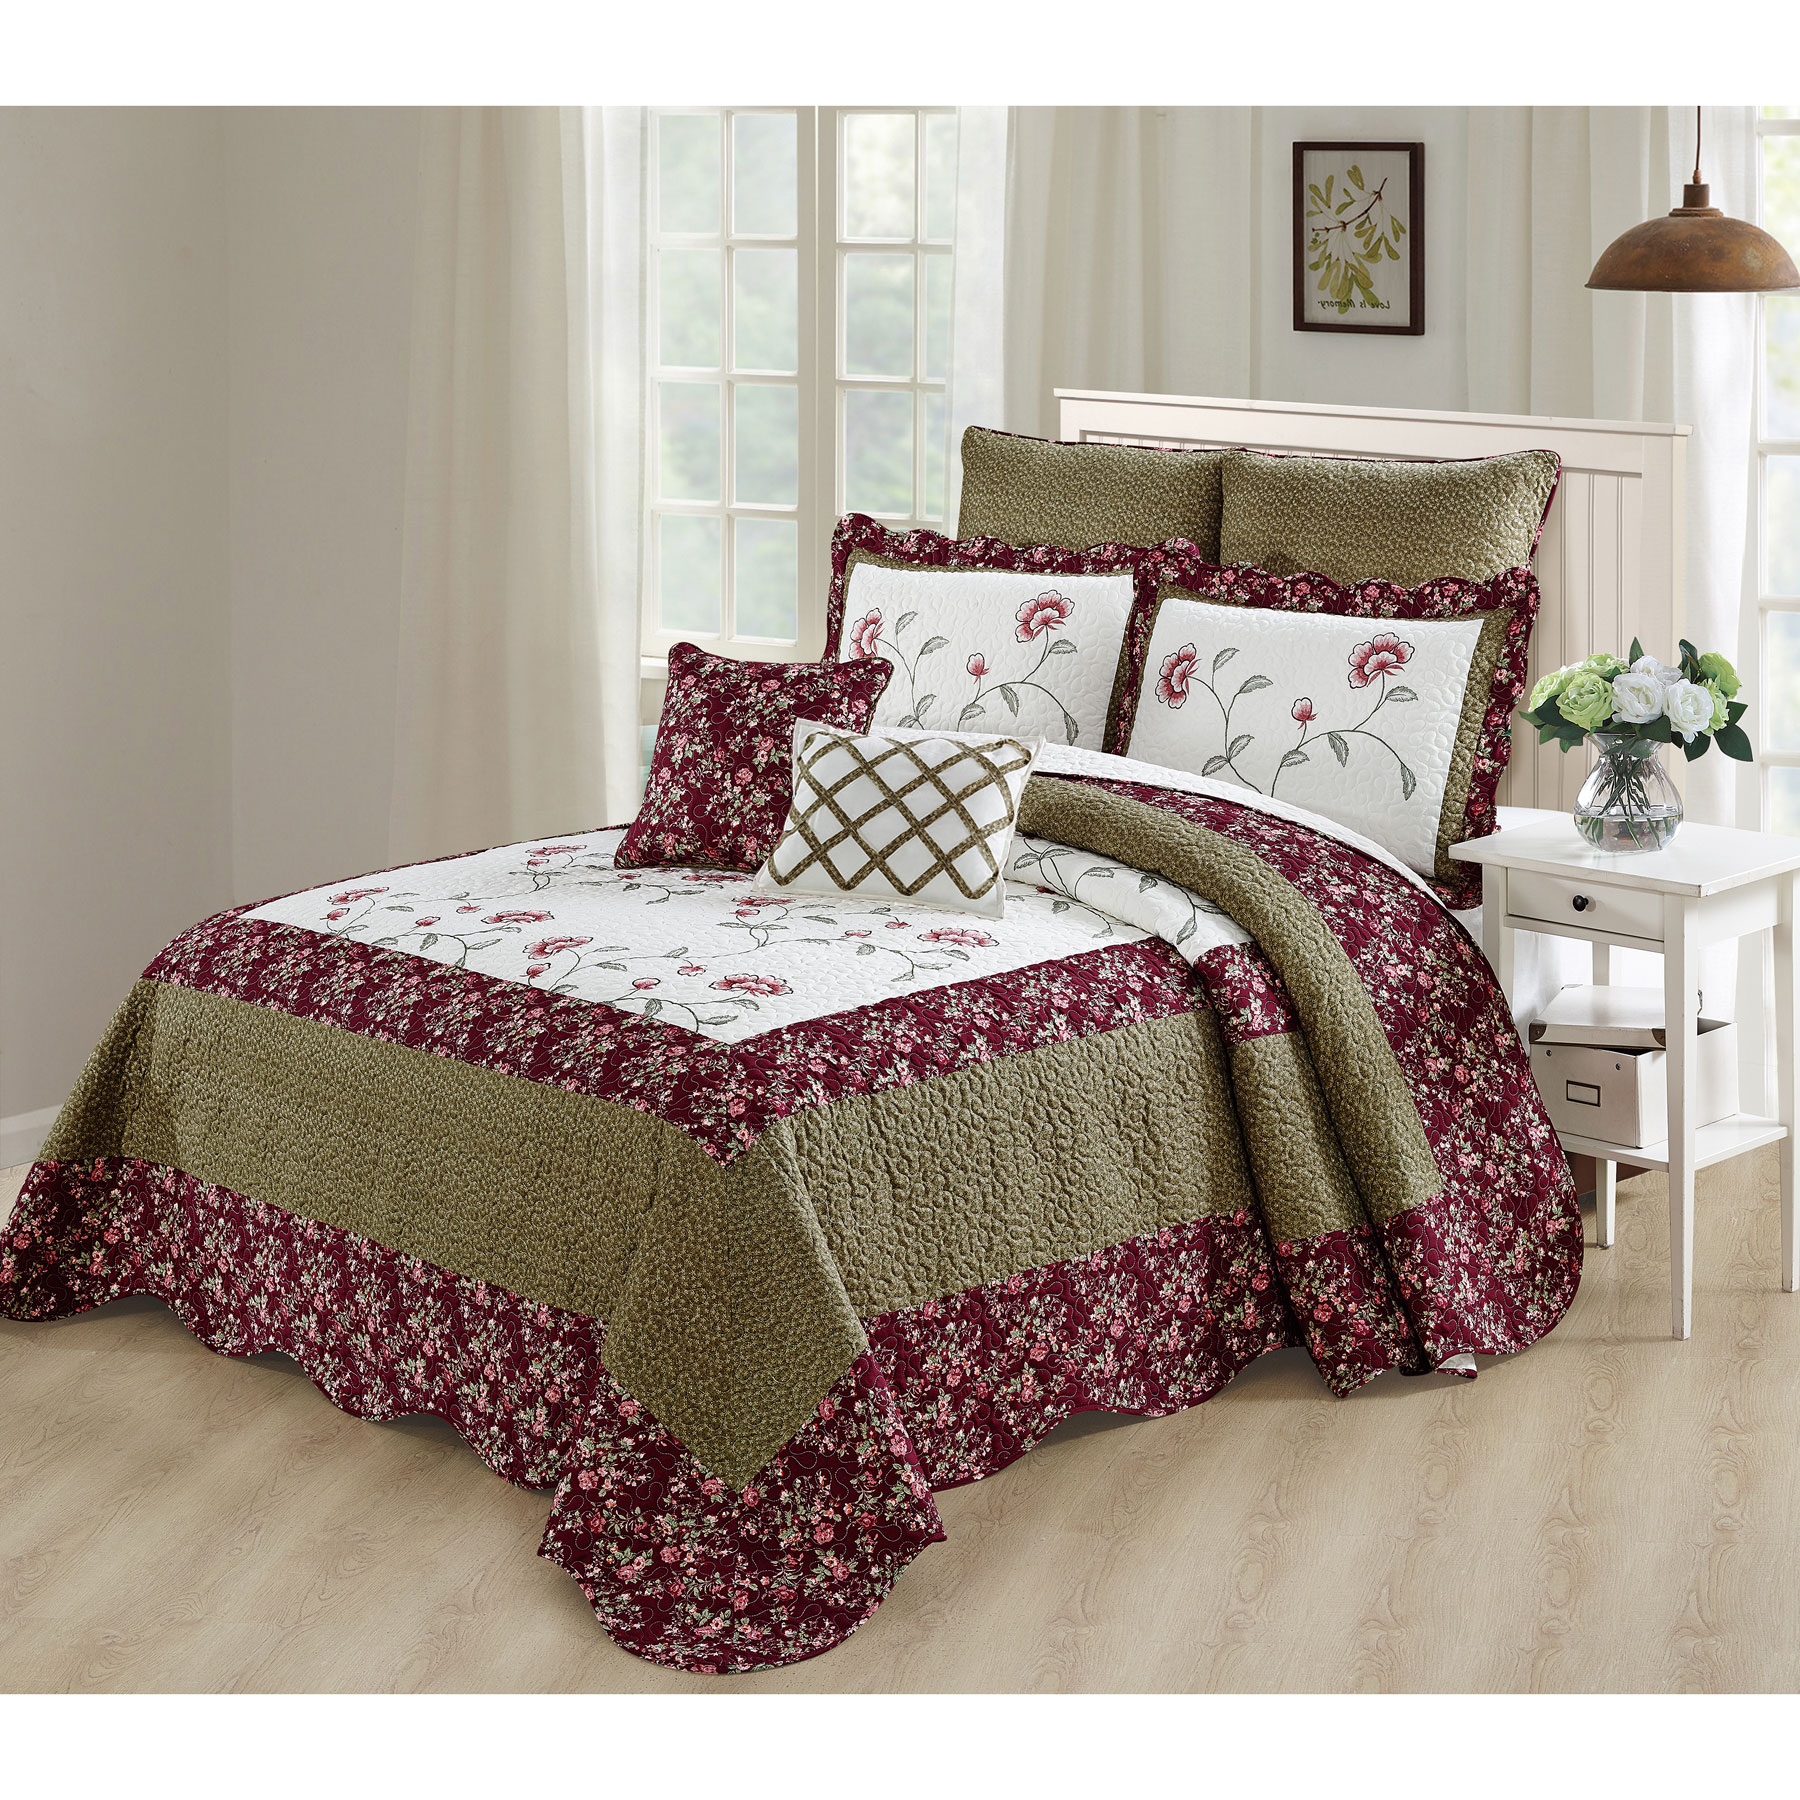 Serenta Saigon 7 Piece Coverlet Bed Spread Set